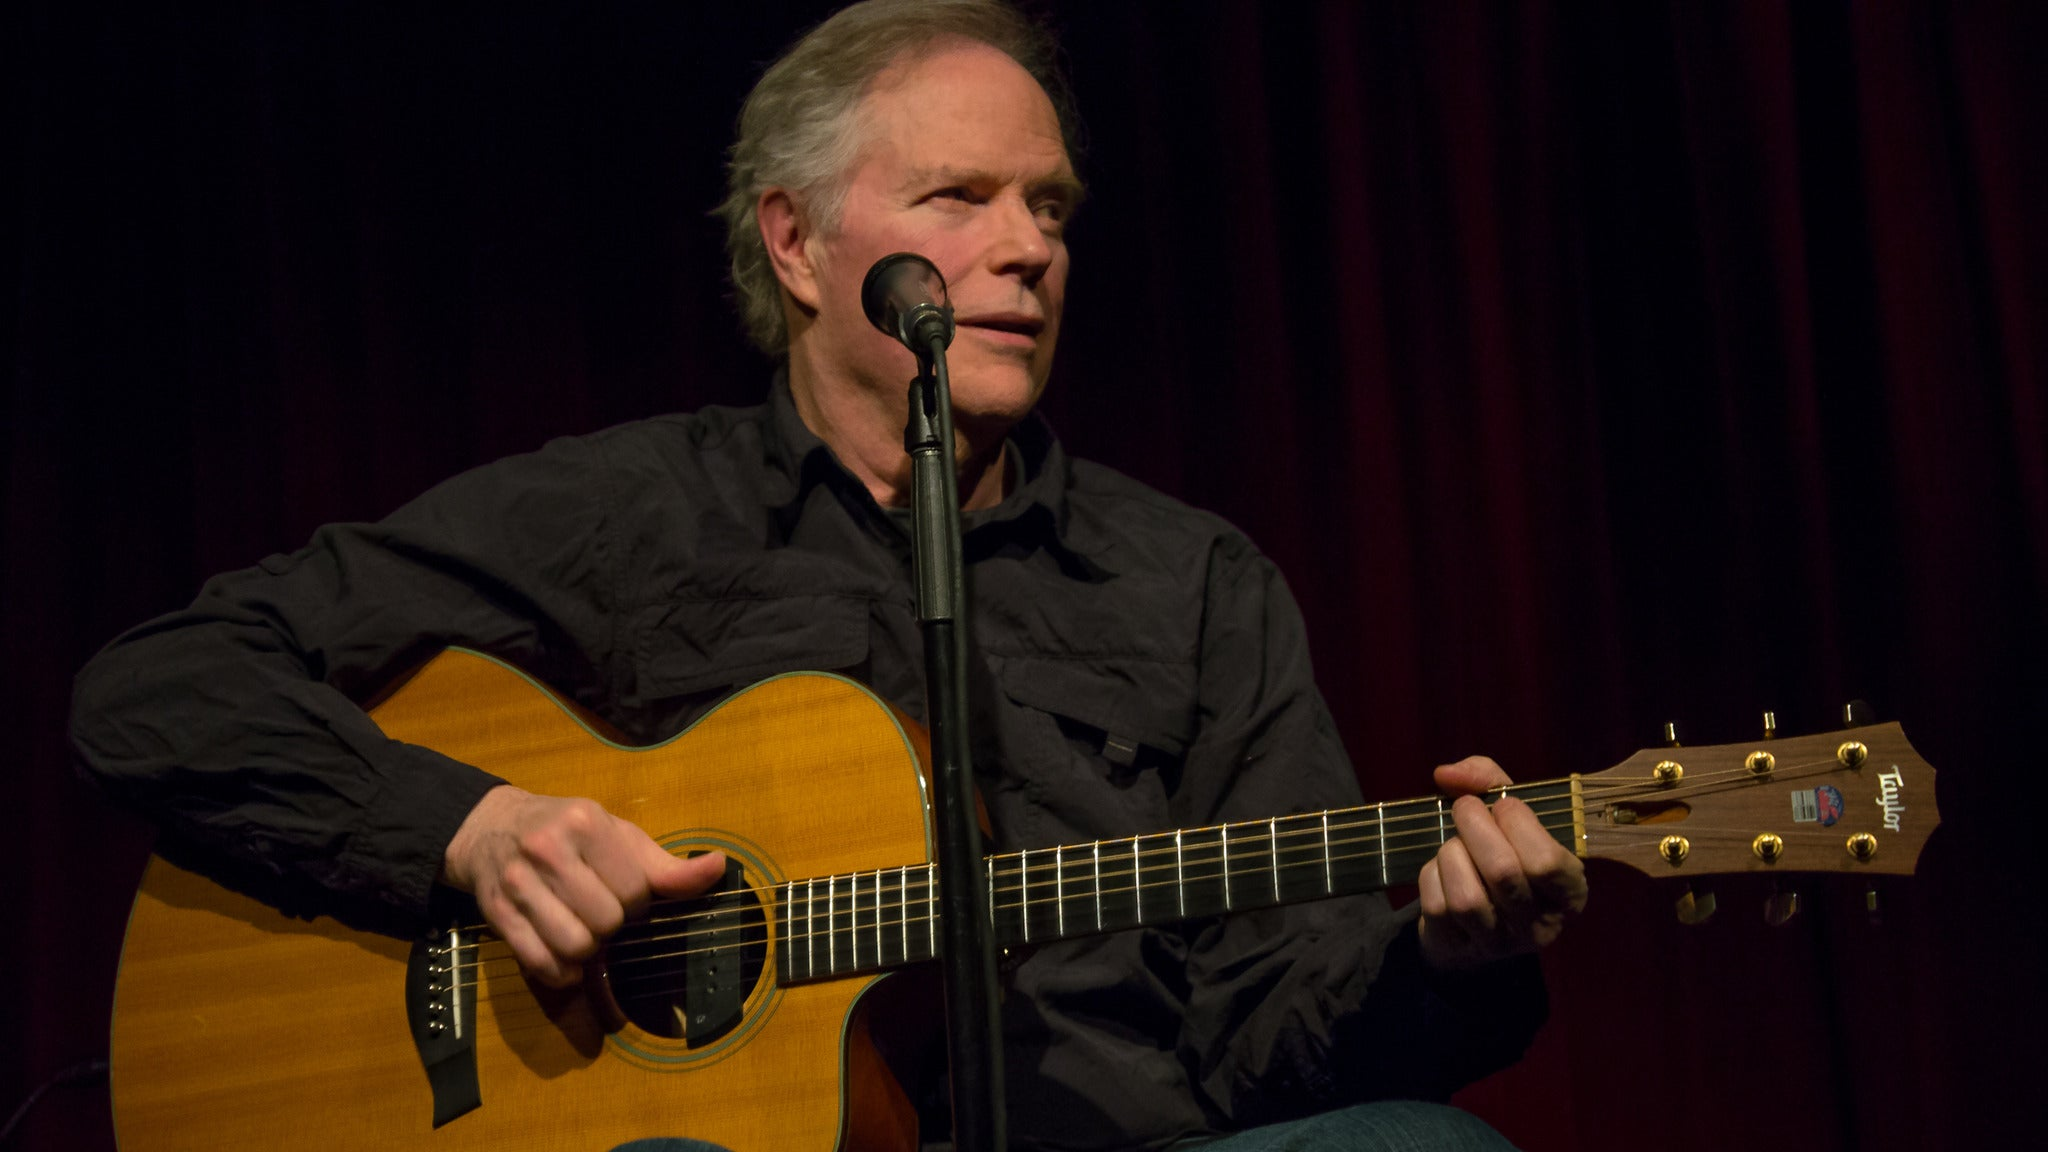 Leo Kottke at Infinity Hall - Norfolk